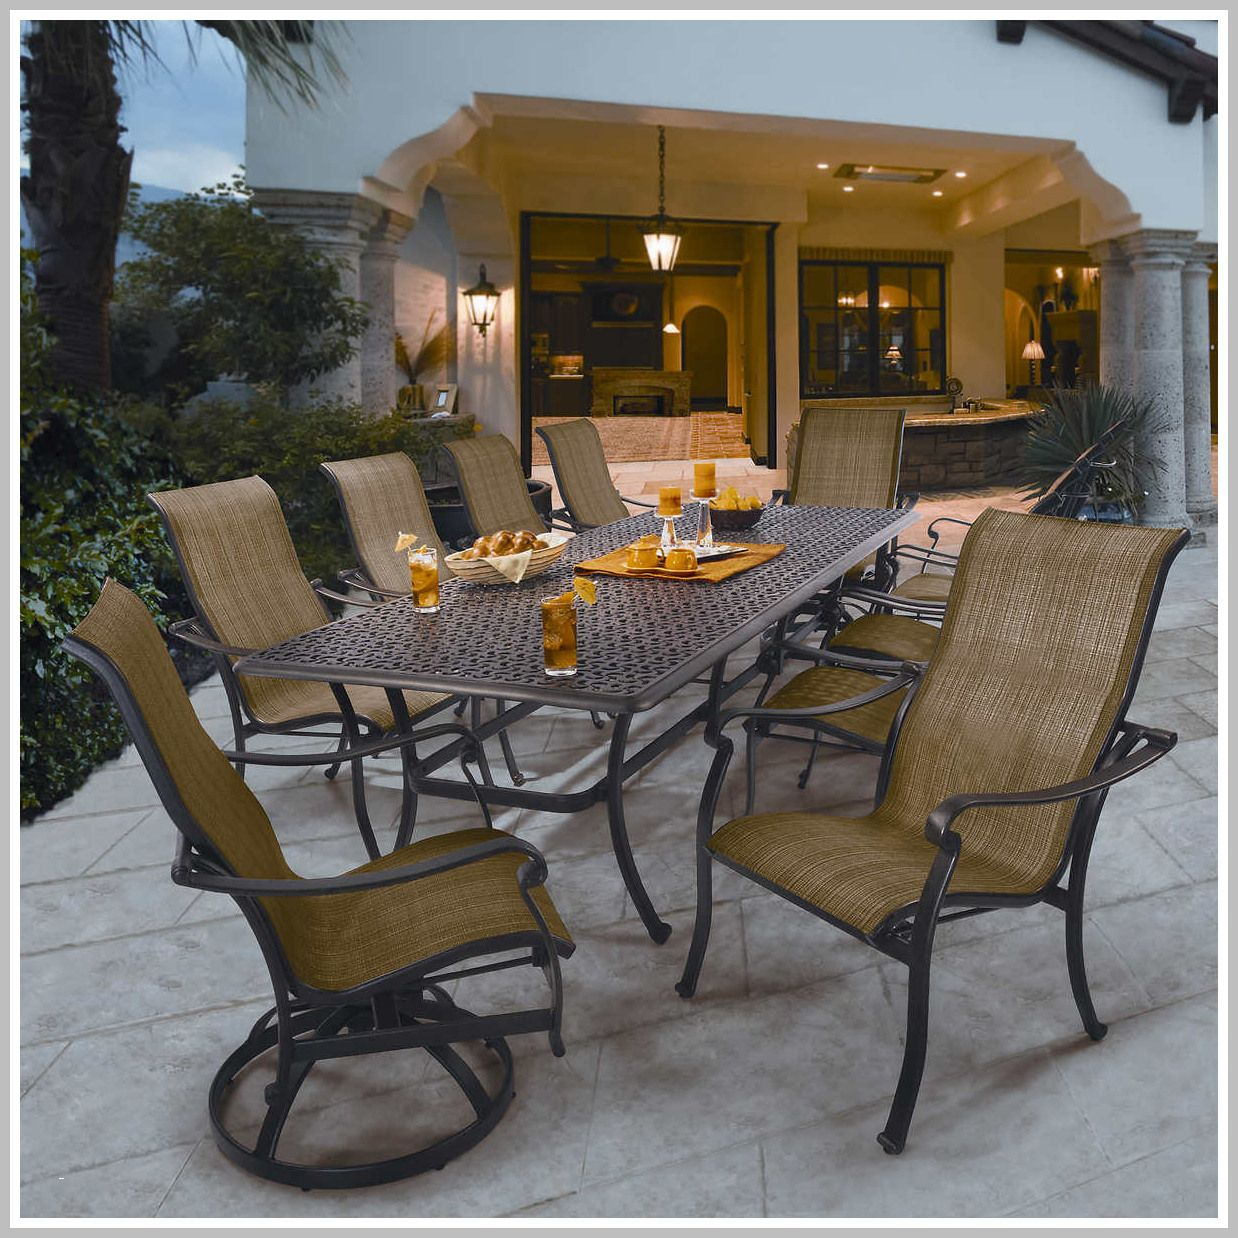 61 Reference Of Patio Furniture Costco Canada In 2020 Patio Patio Furniture Outdoor Furniture Sets